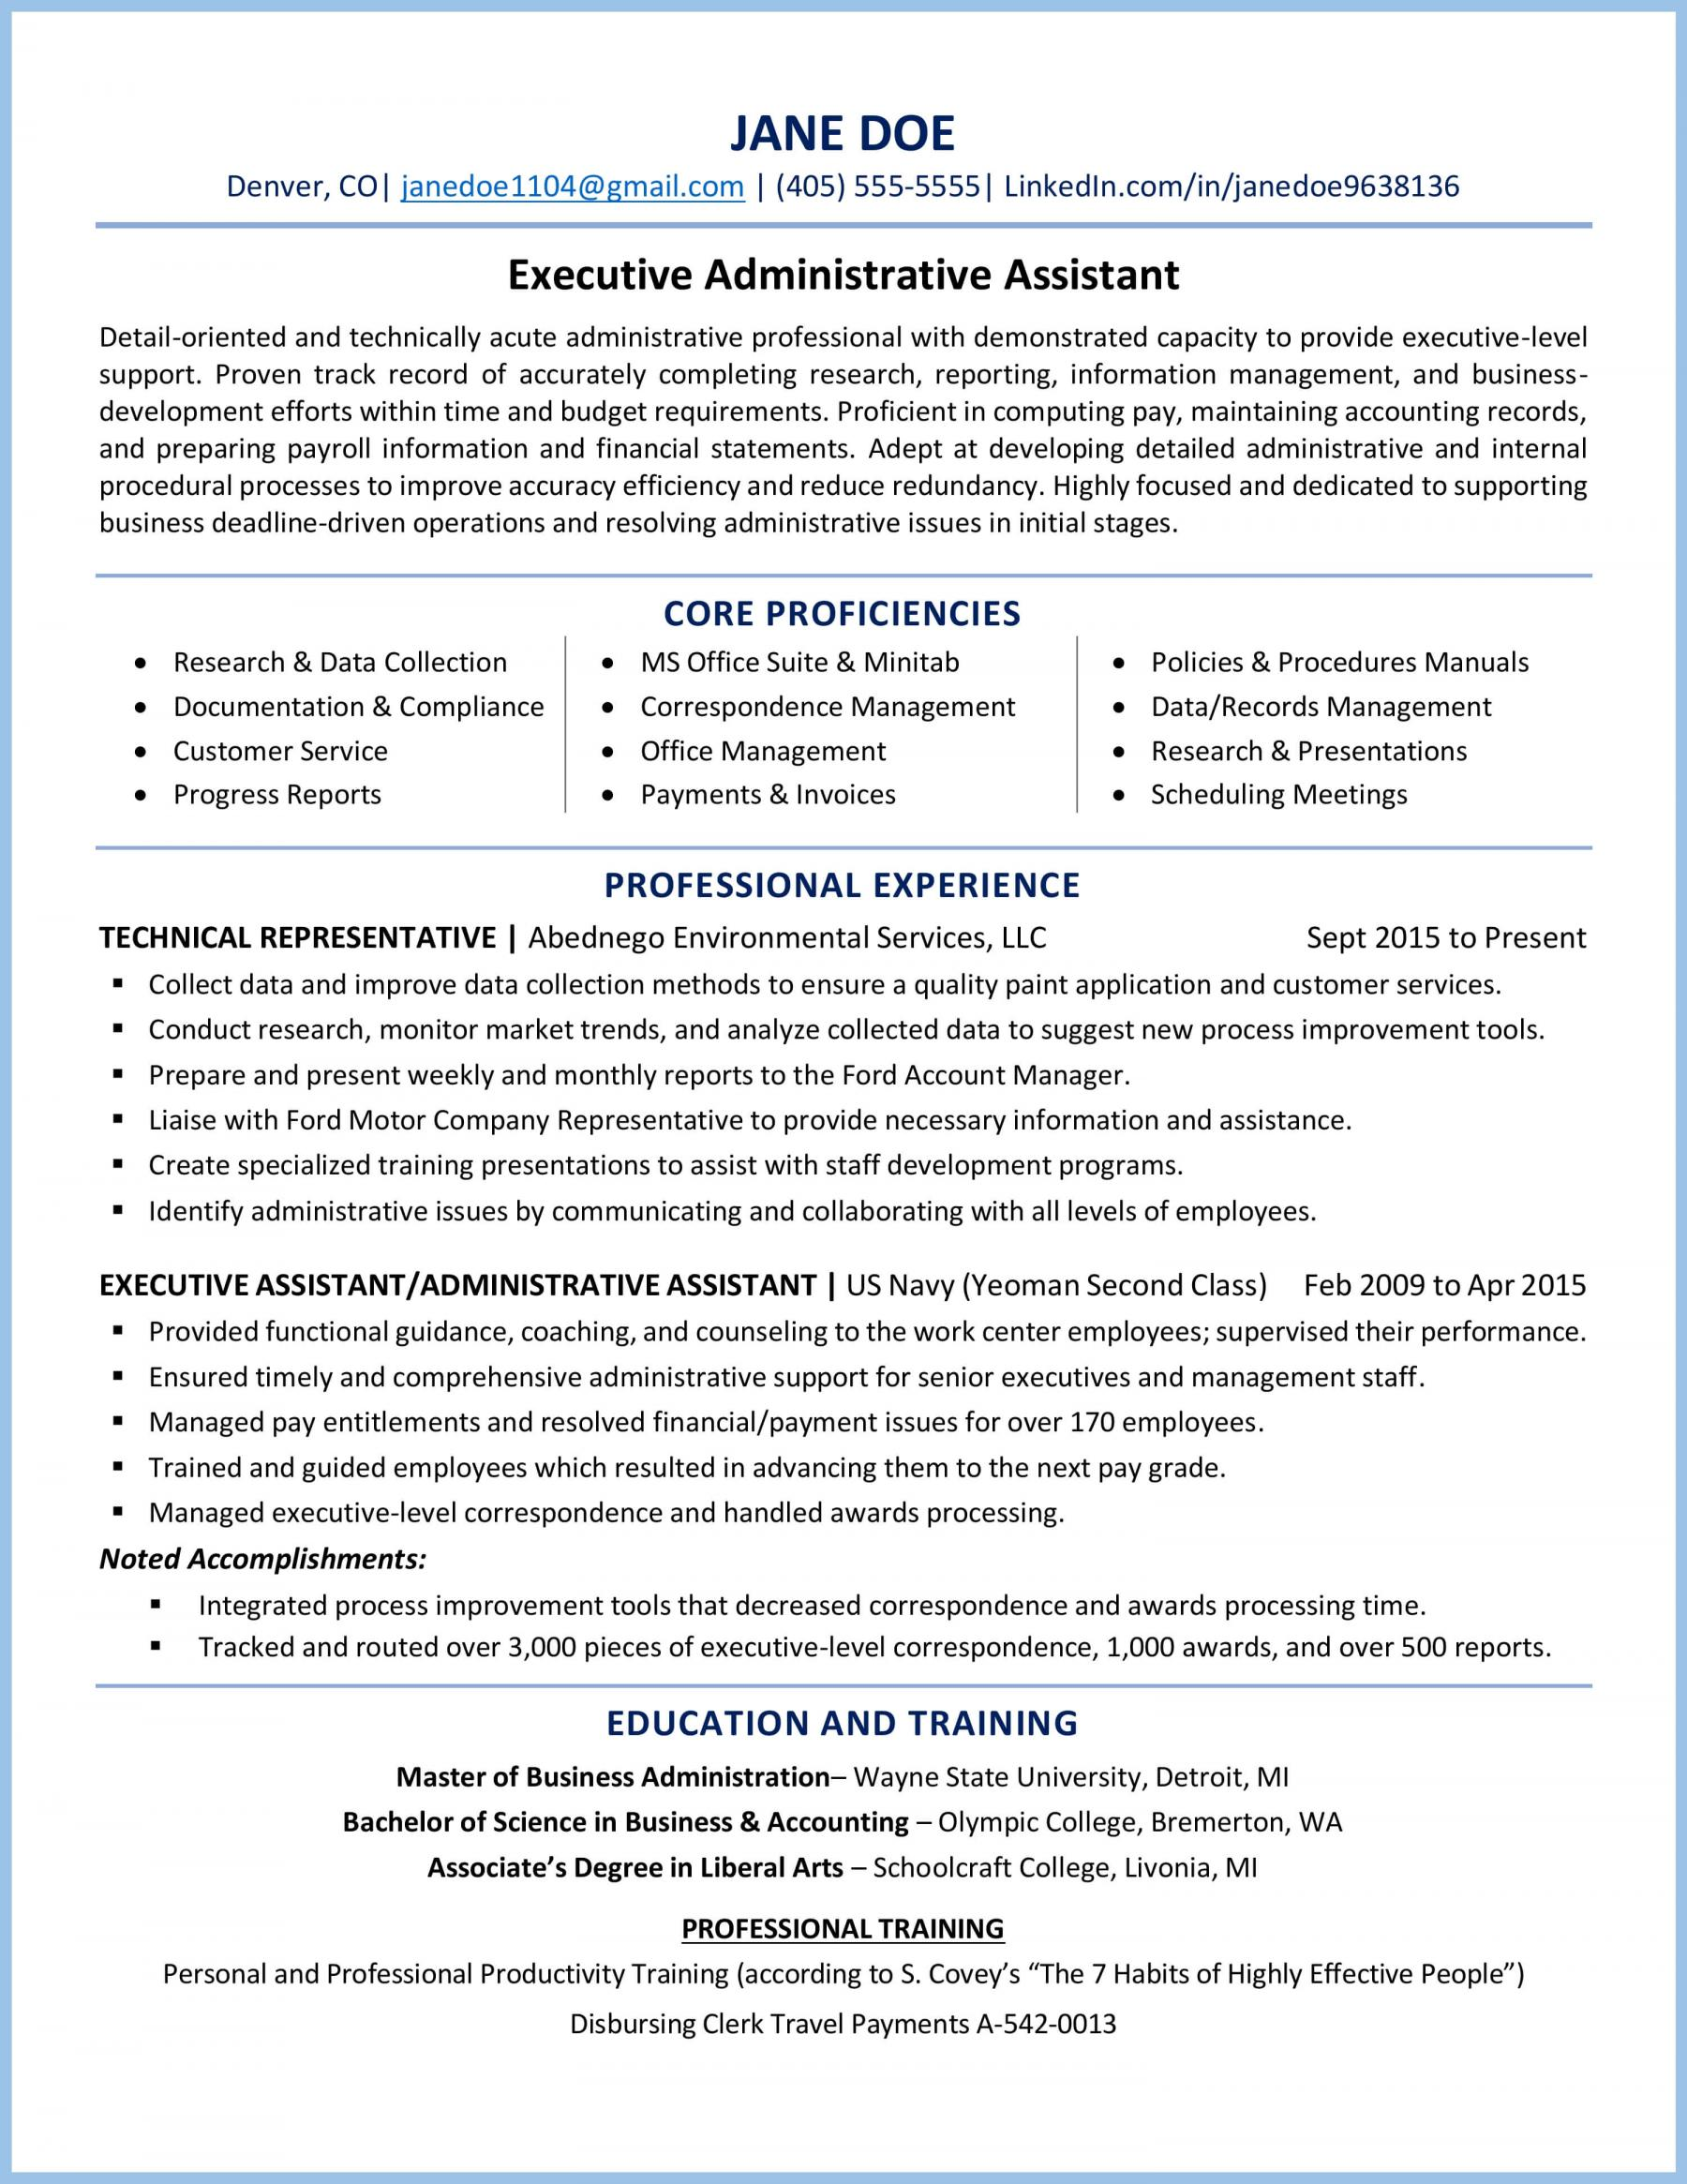 executive administrative assistant resume example admin examples dht5rqzz0ssie0qvhbnj Resume Executive Admin Resume Examples